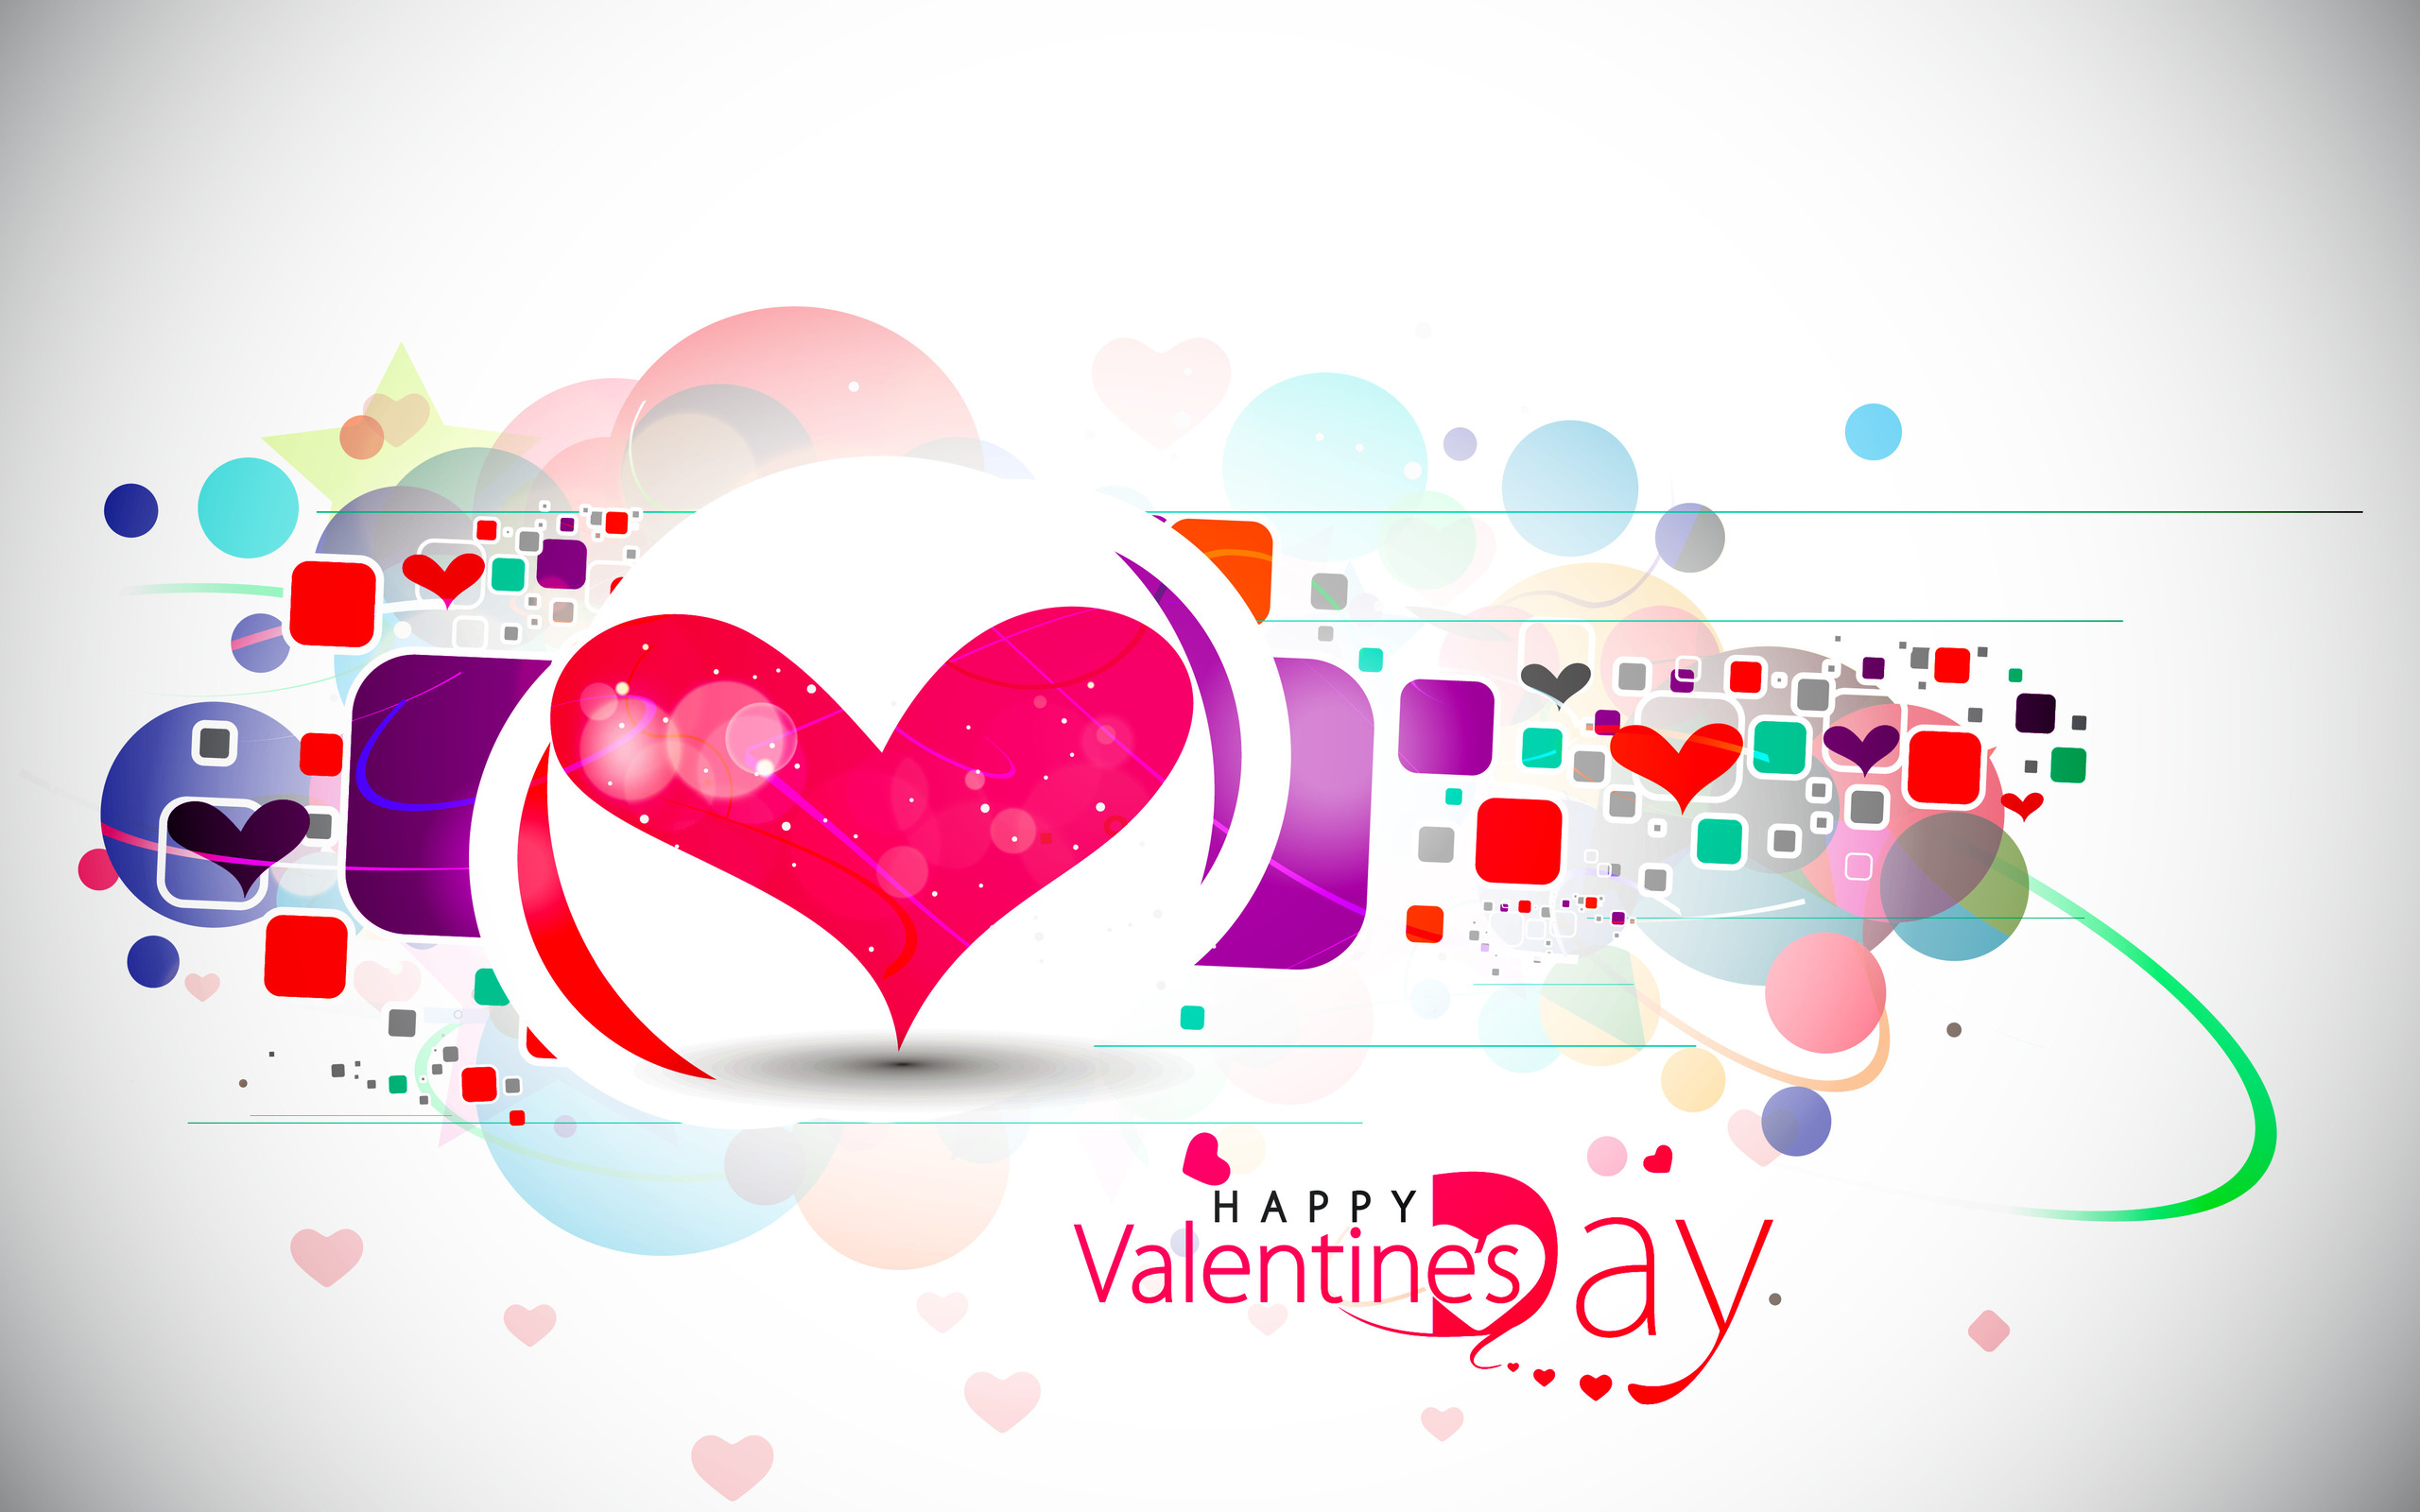 Download Name Beauty Happy Valentines Day Wallpaper Backgrounds 2560x1600